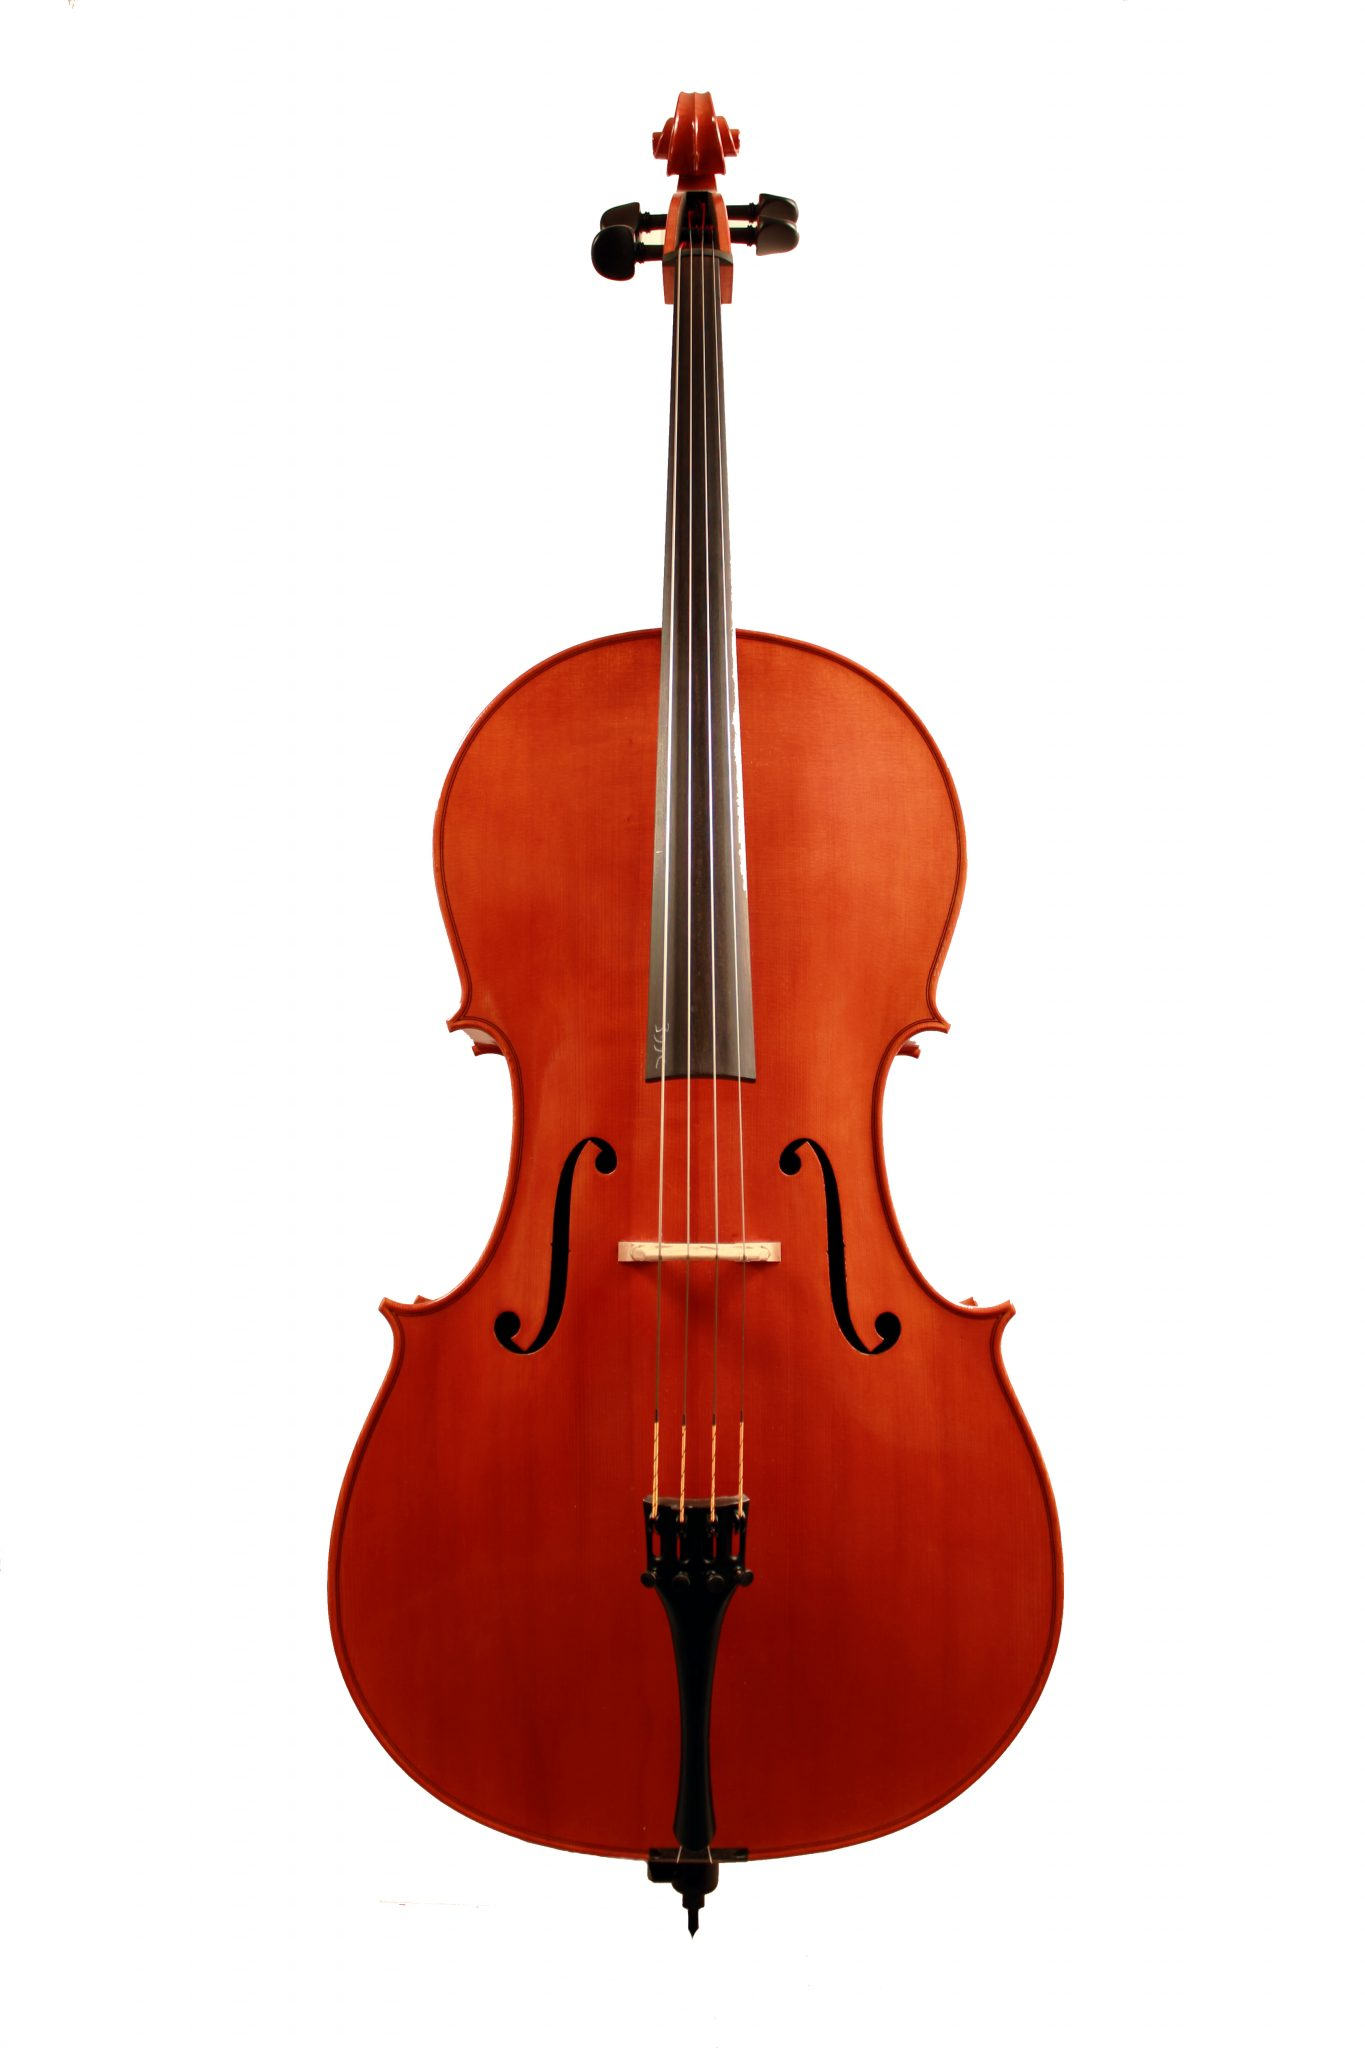 Cello by Nunzio Ferraro, Cremona 2012 for sale at Bridgewood and Neitzert London